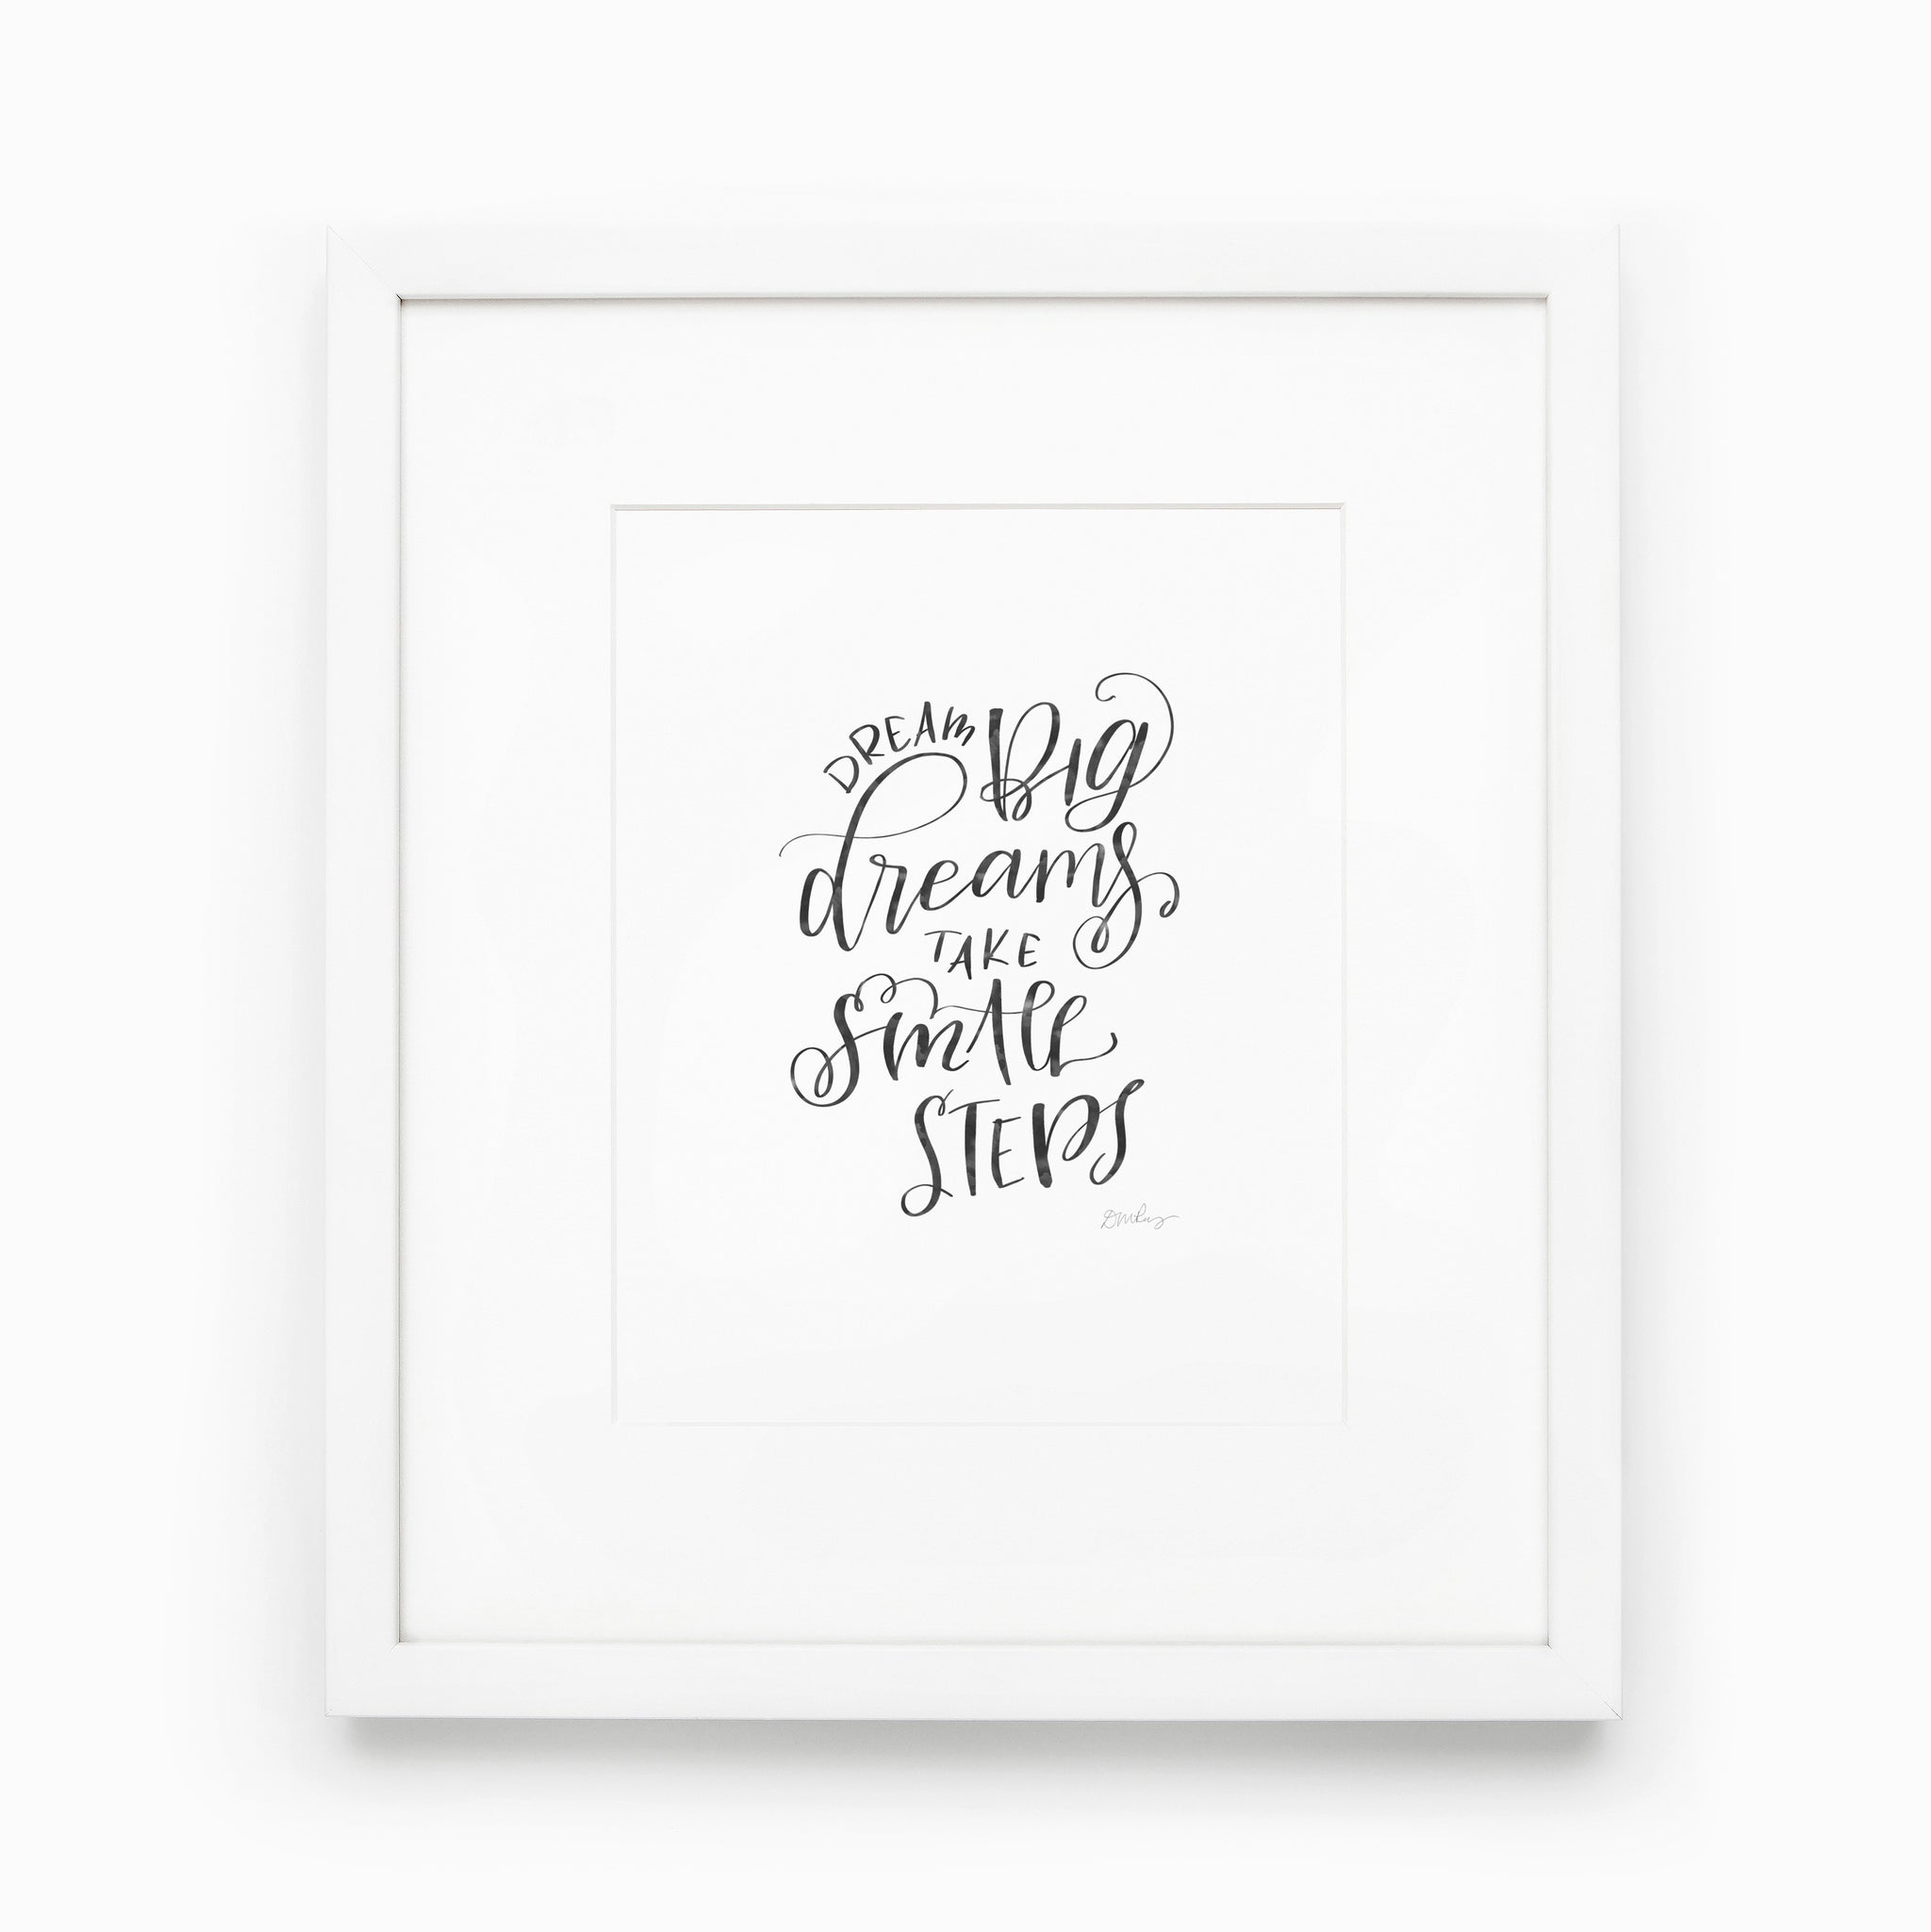 DREAM BIG DREAMS | 8x10 INSTANT PRINT